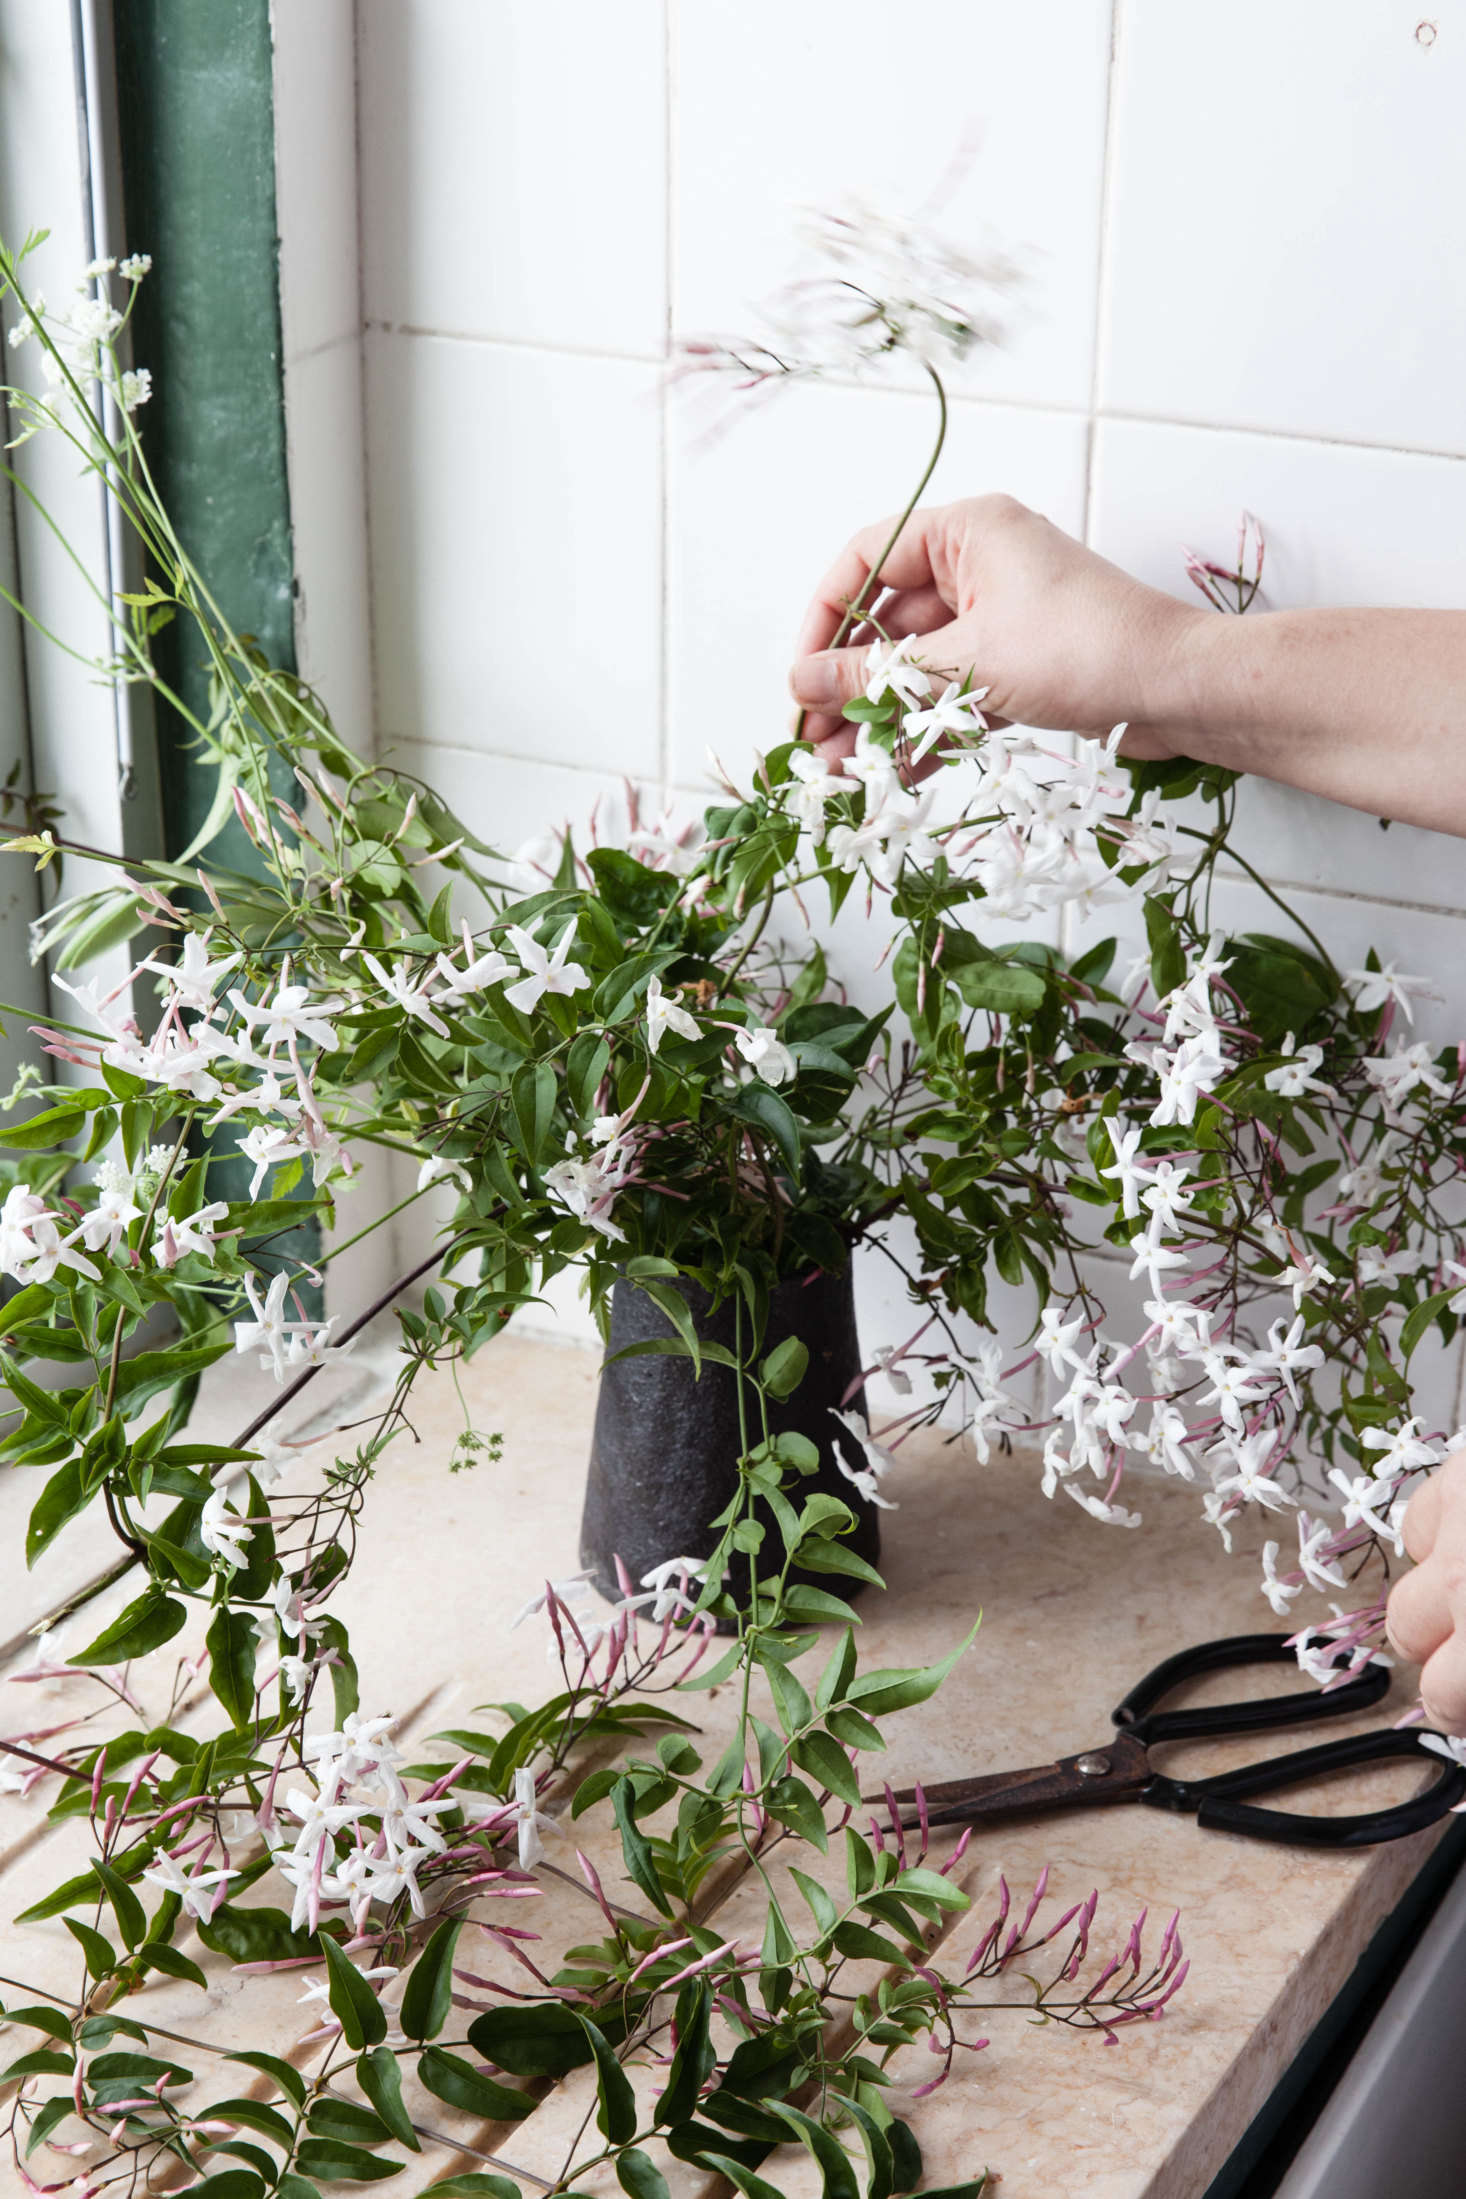 Rethinking Jasmine: The Perfect Vase for a Fragrant